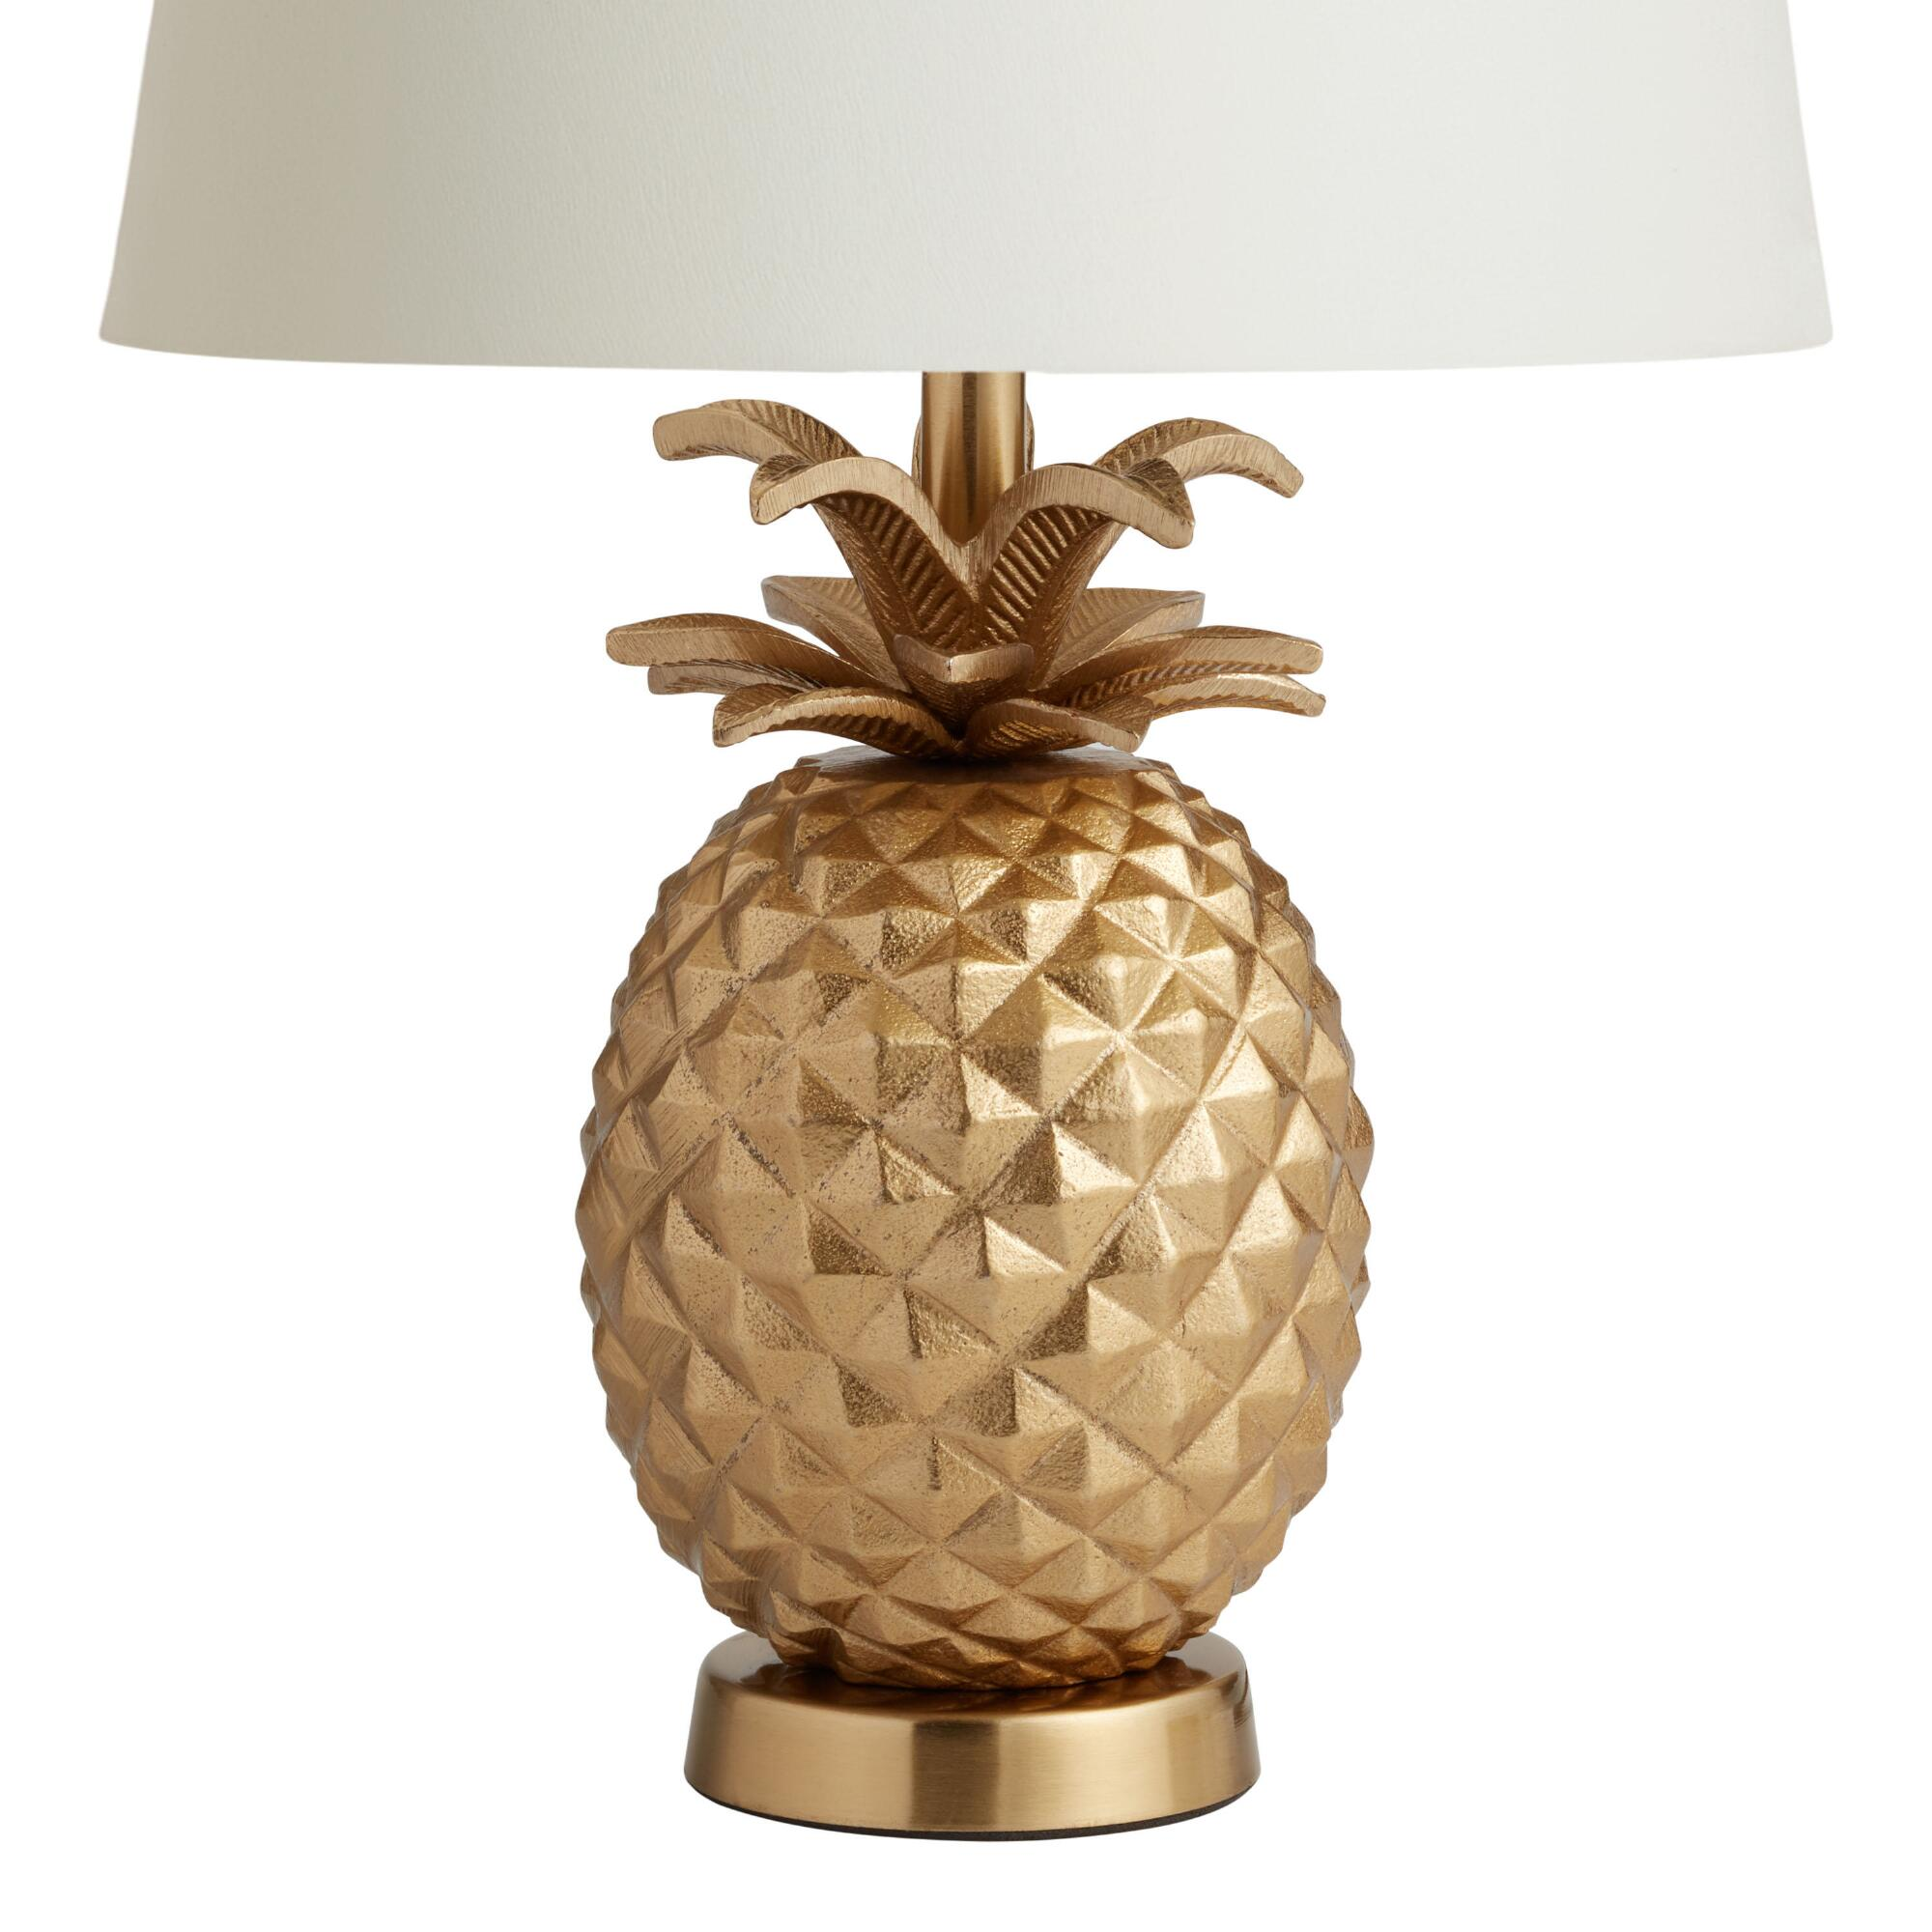 Accent lighting unique table lamps online world market brass pineapple accent lamp base geotapseo Image collections